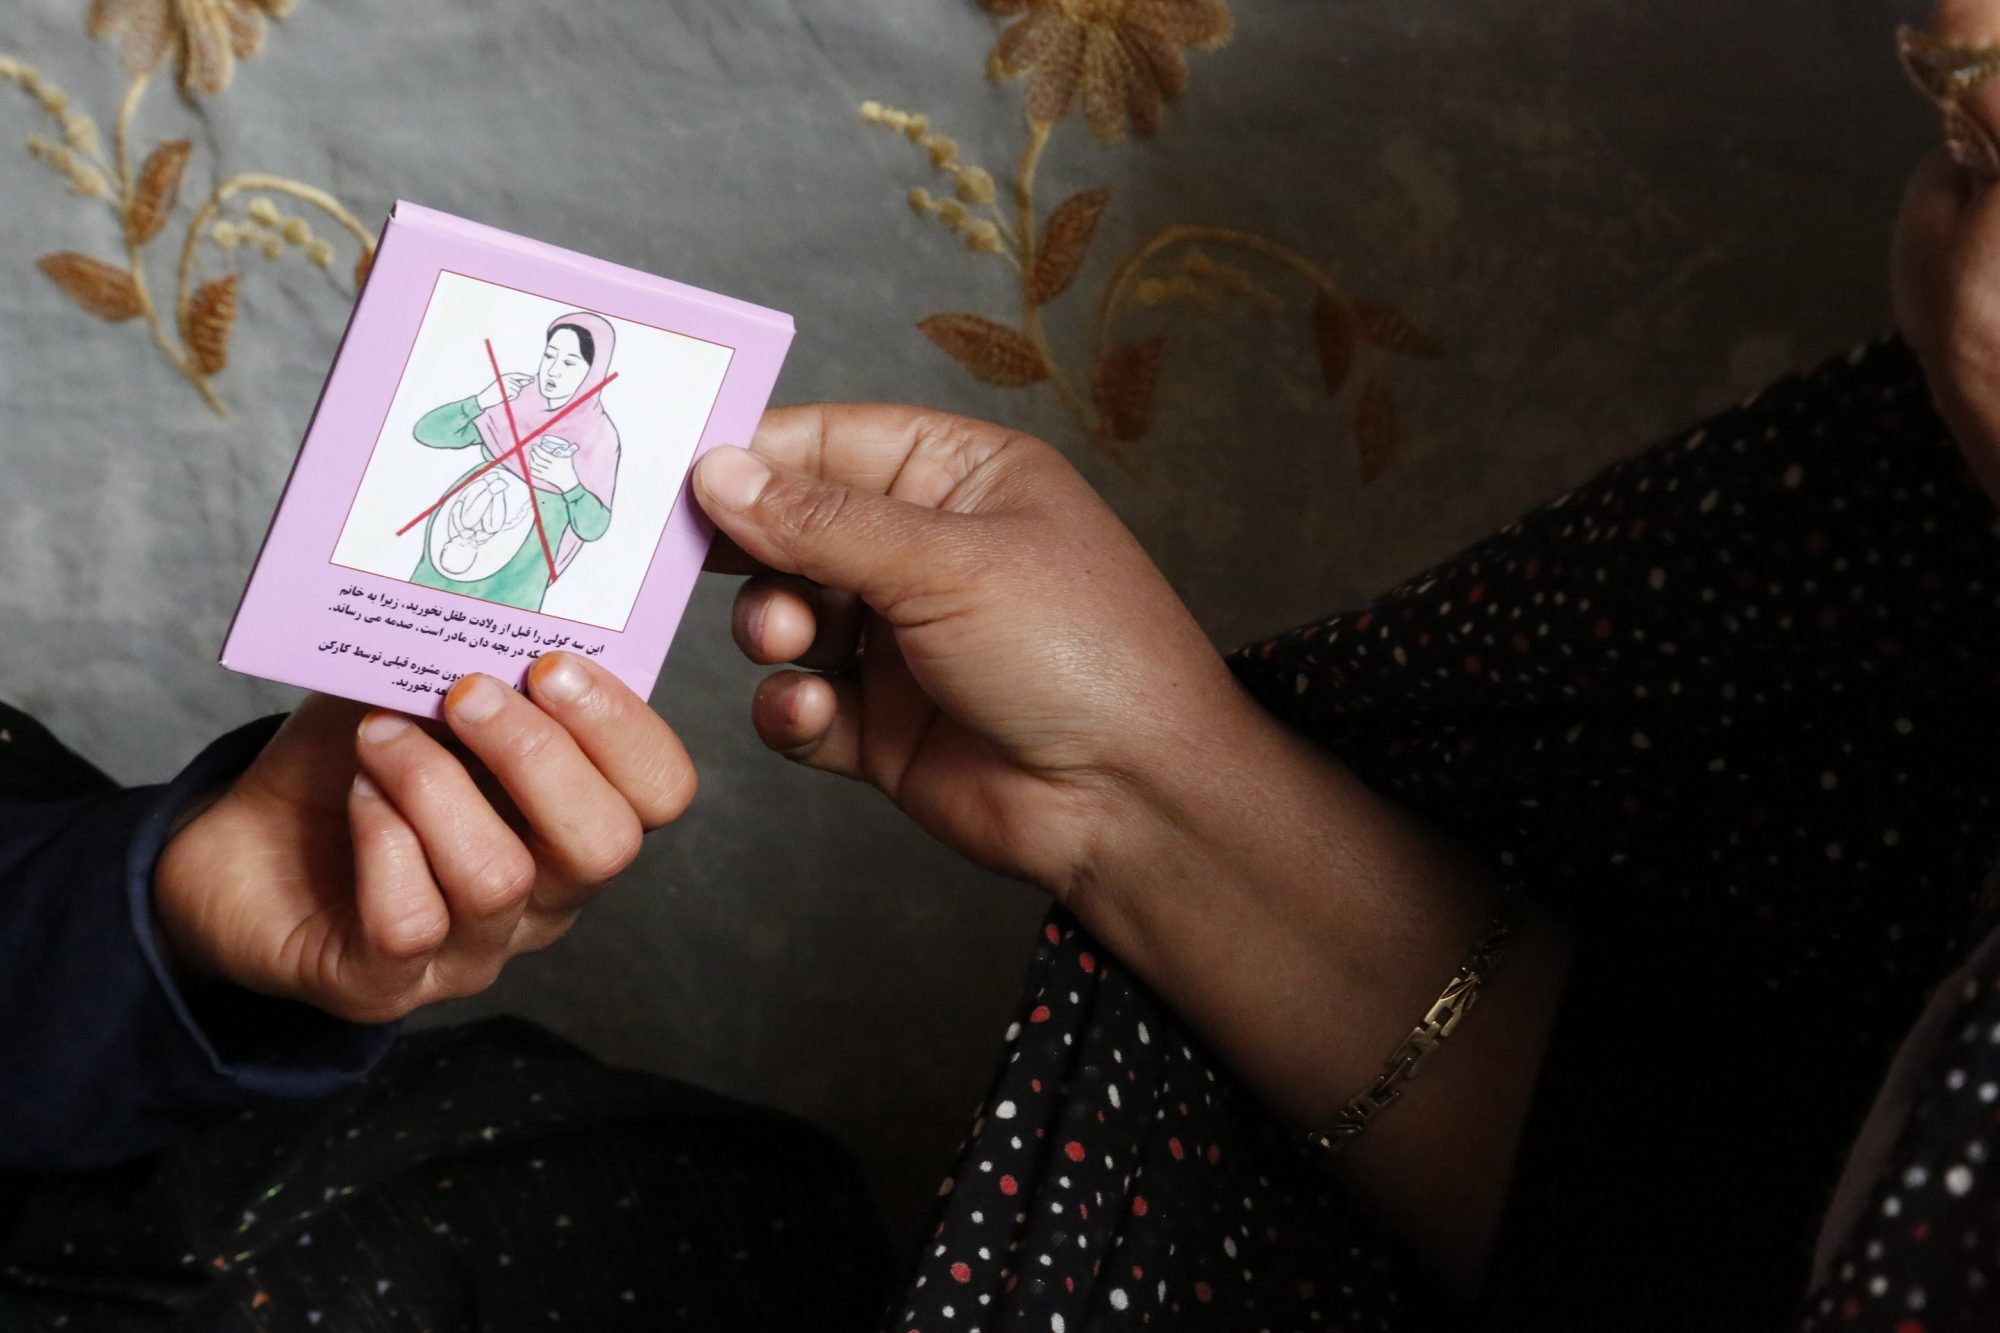 Two hands holding a small card about misoprostol.